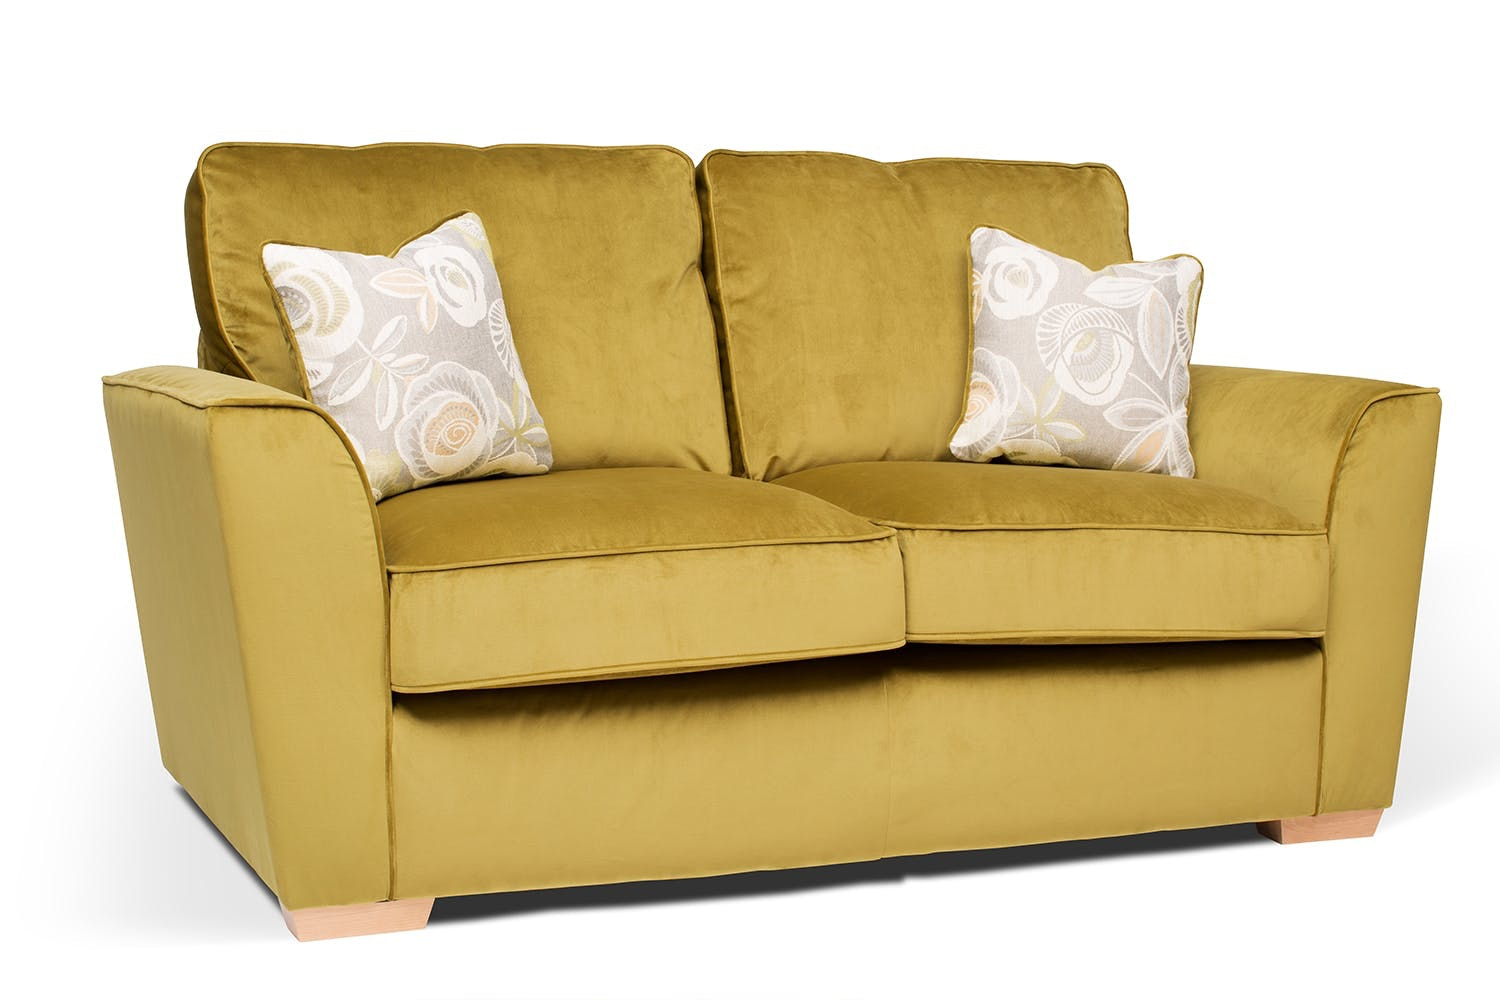 Lilly 2 Seater Sofa